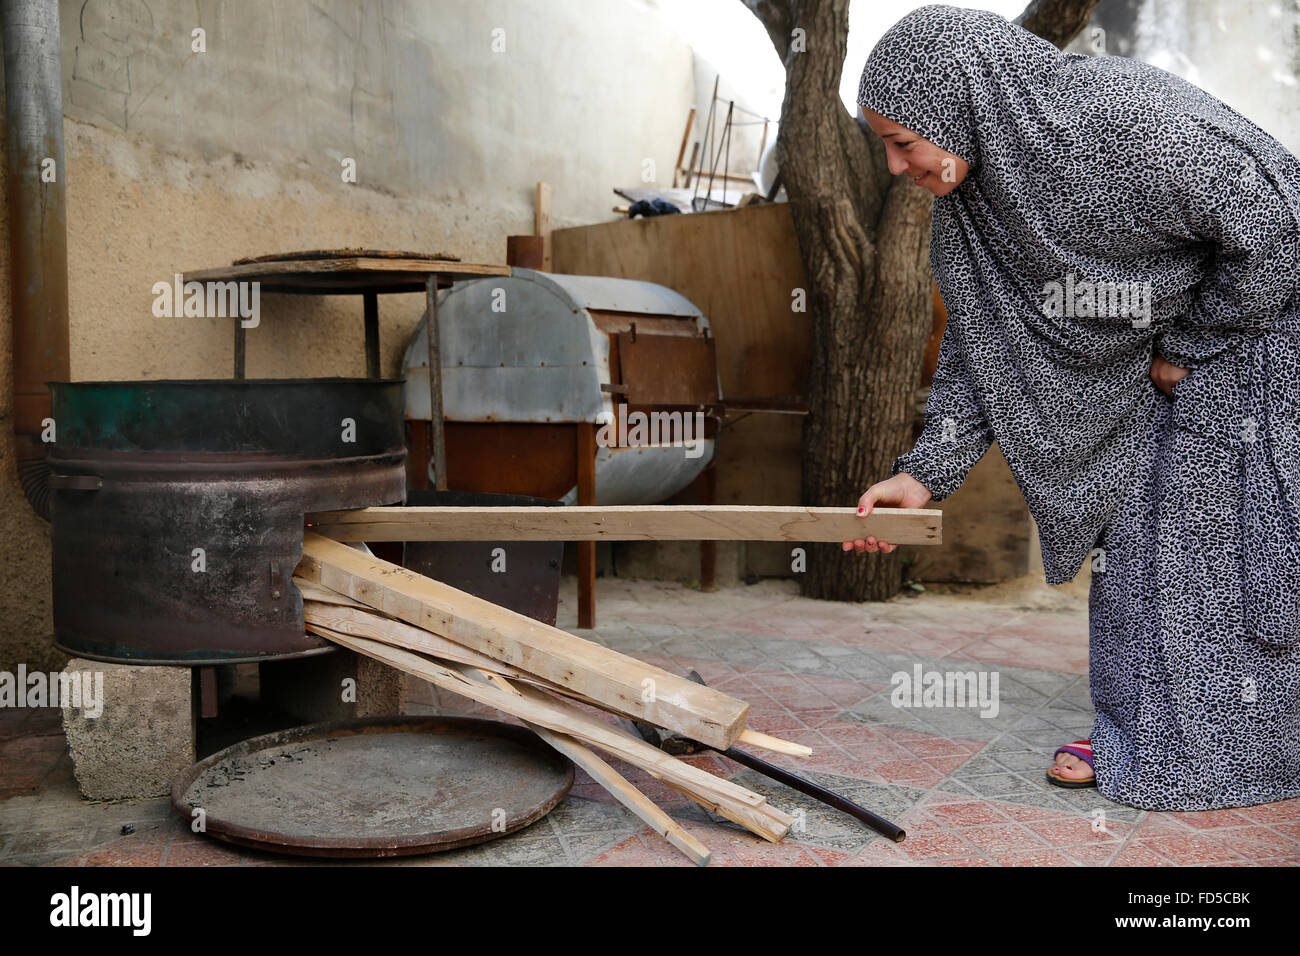 Palestinian woman loading wood into an oven. - Stock Image